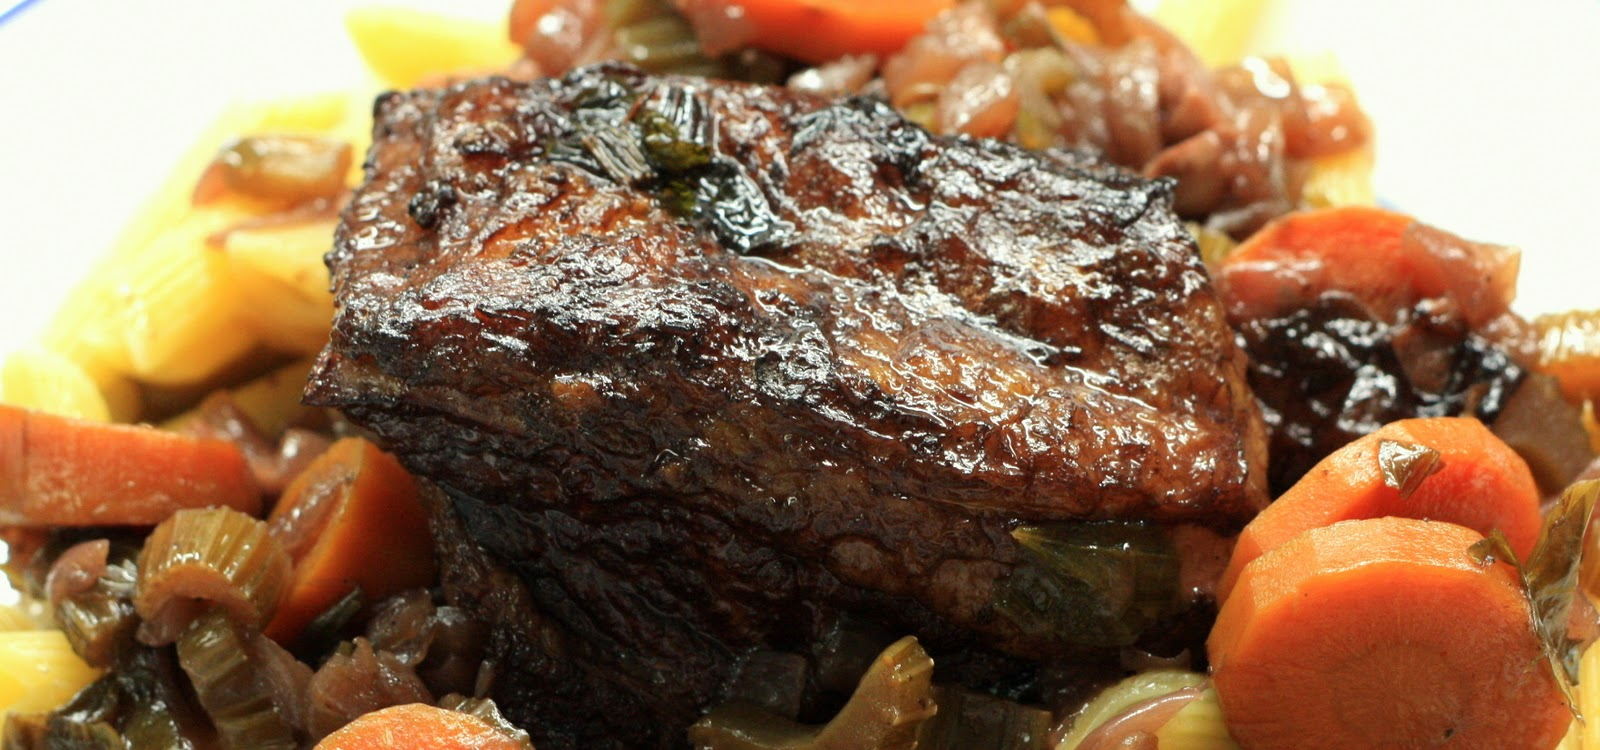 Fresh Local and Best: Daniel Boulud's Braised Short Ribs Recipe